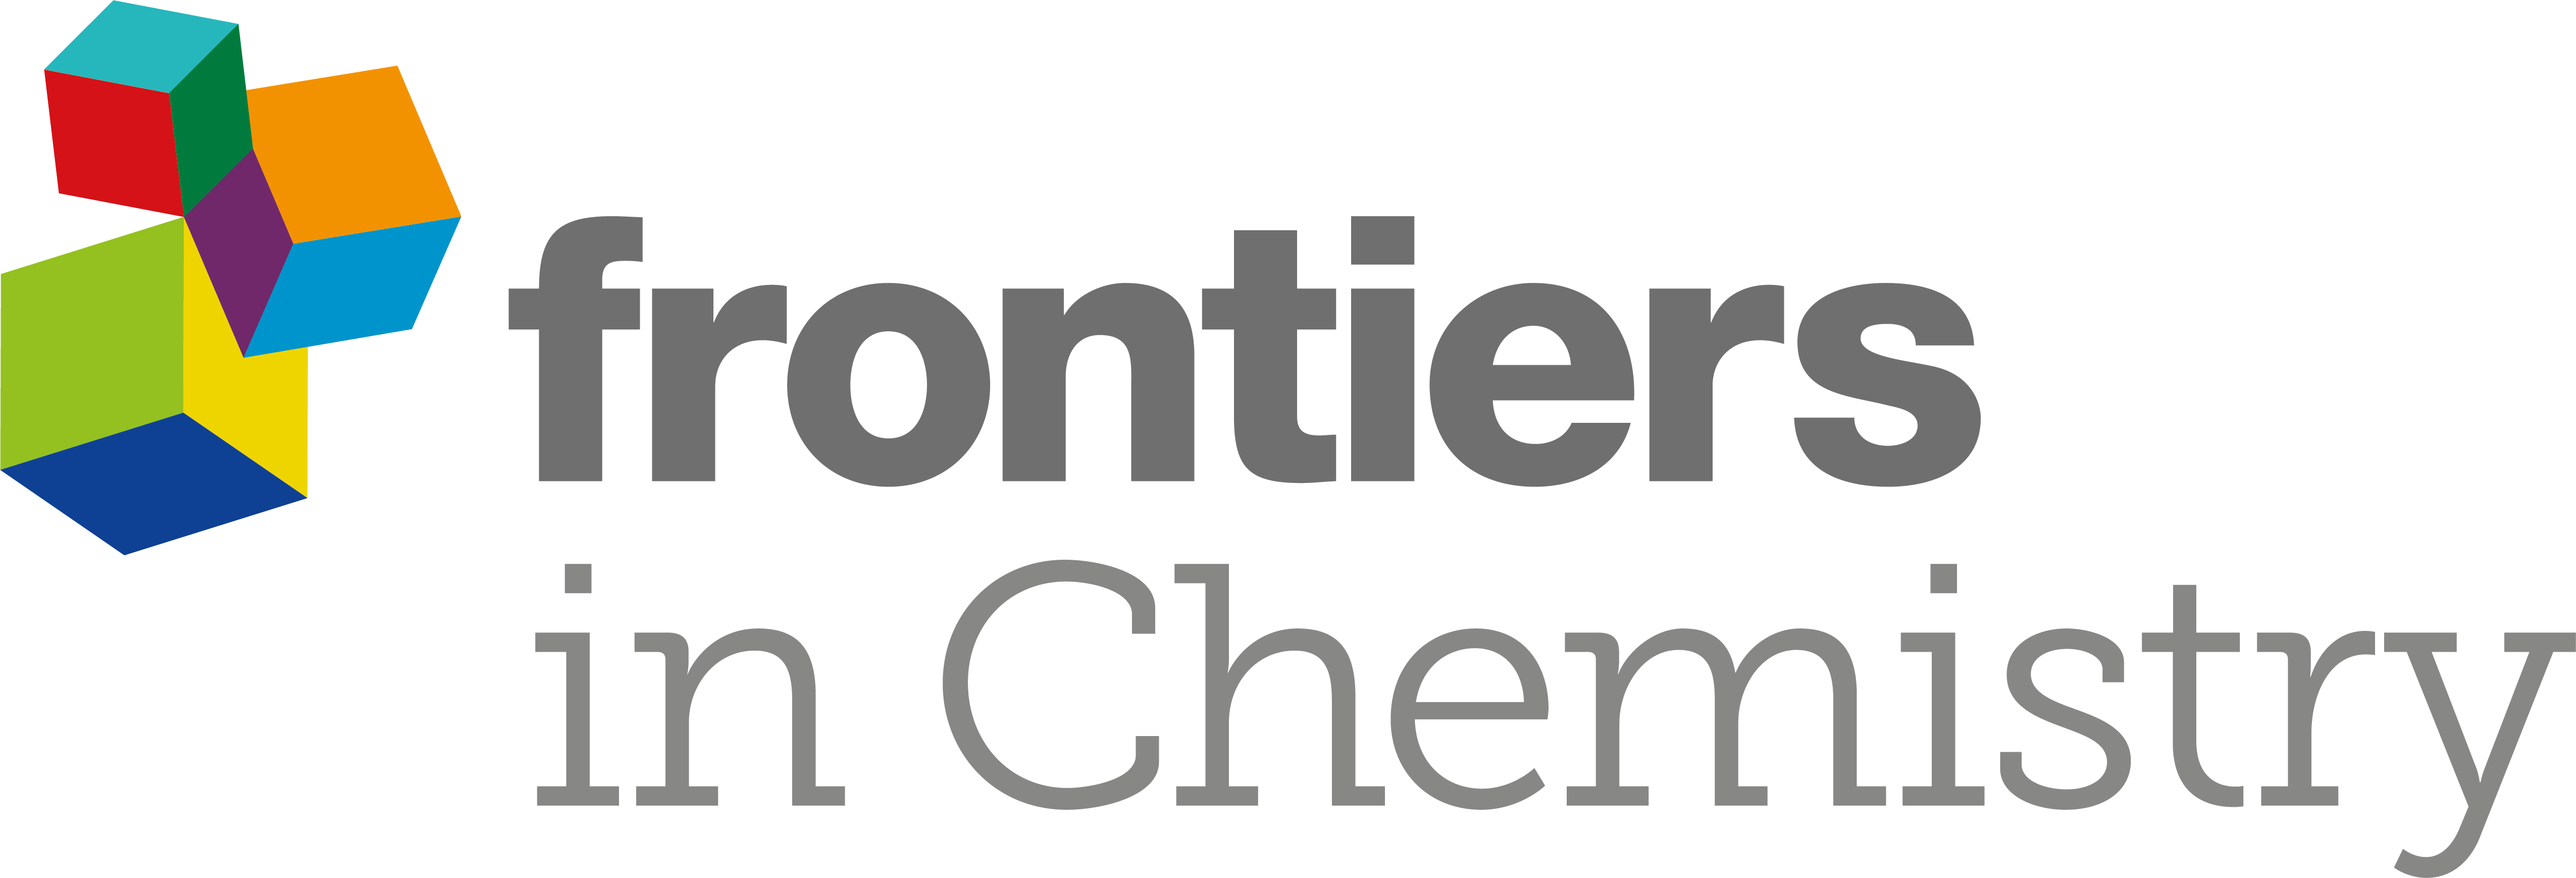 Frontiers in Chemistry